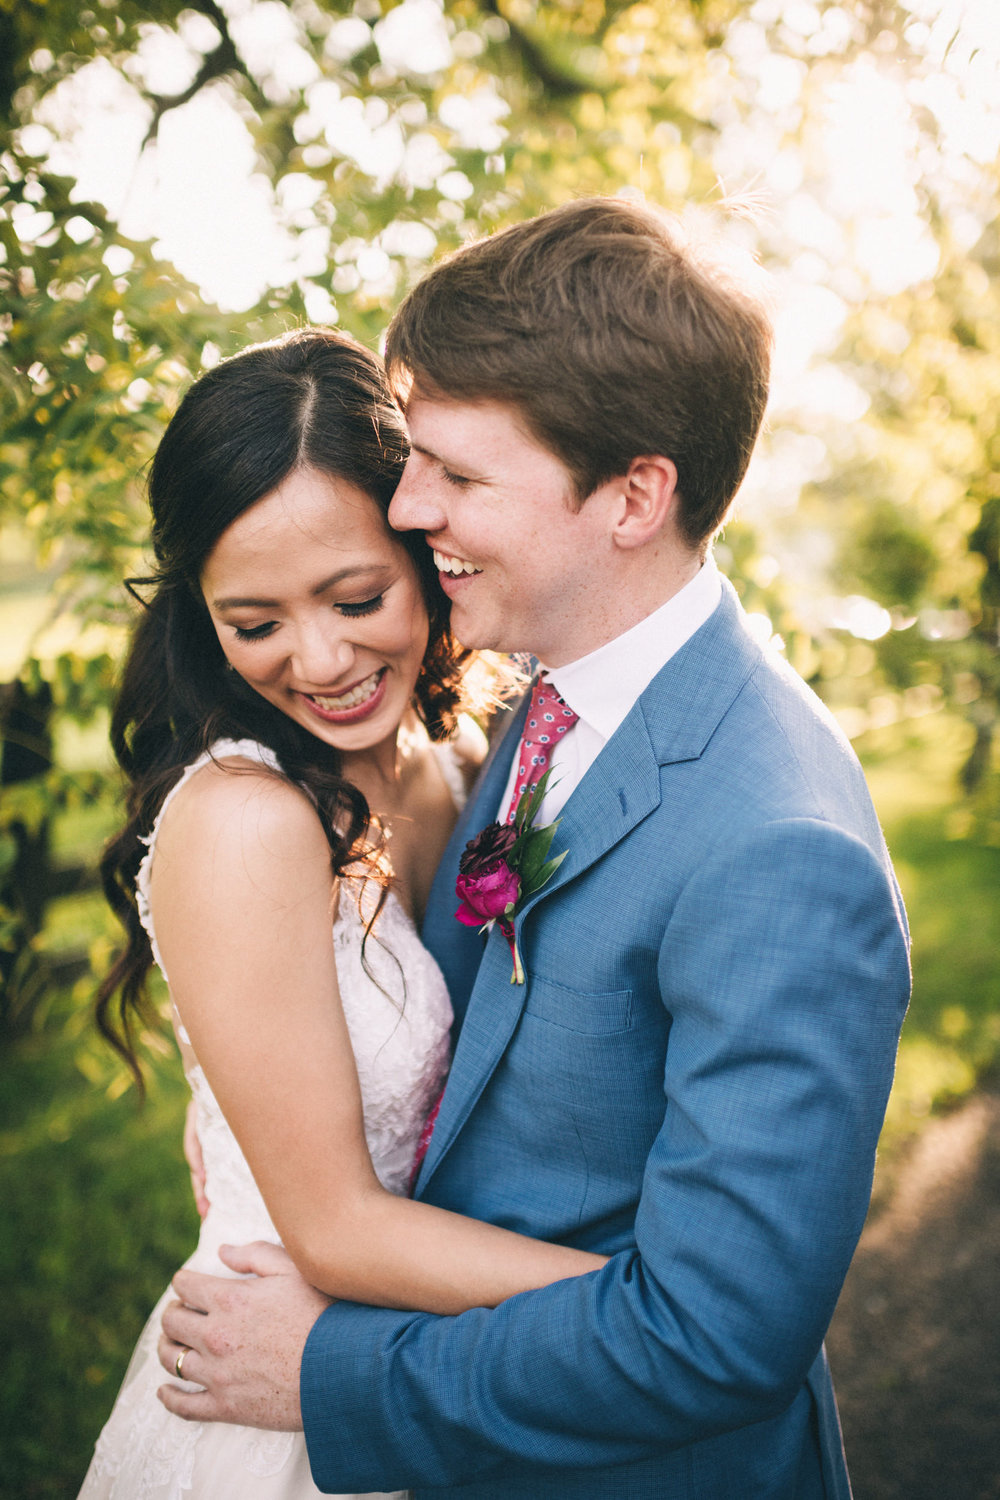 Louisville-Kentucky-Wedding-and-Elopement-Photographer-Sarah-Katherine-Davis-Photography-Summer-Jewel-Toned-Wedding-Chineese-Tea-Ceremony-Warrenwood-Manor-Danville-654.jpg